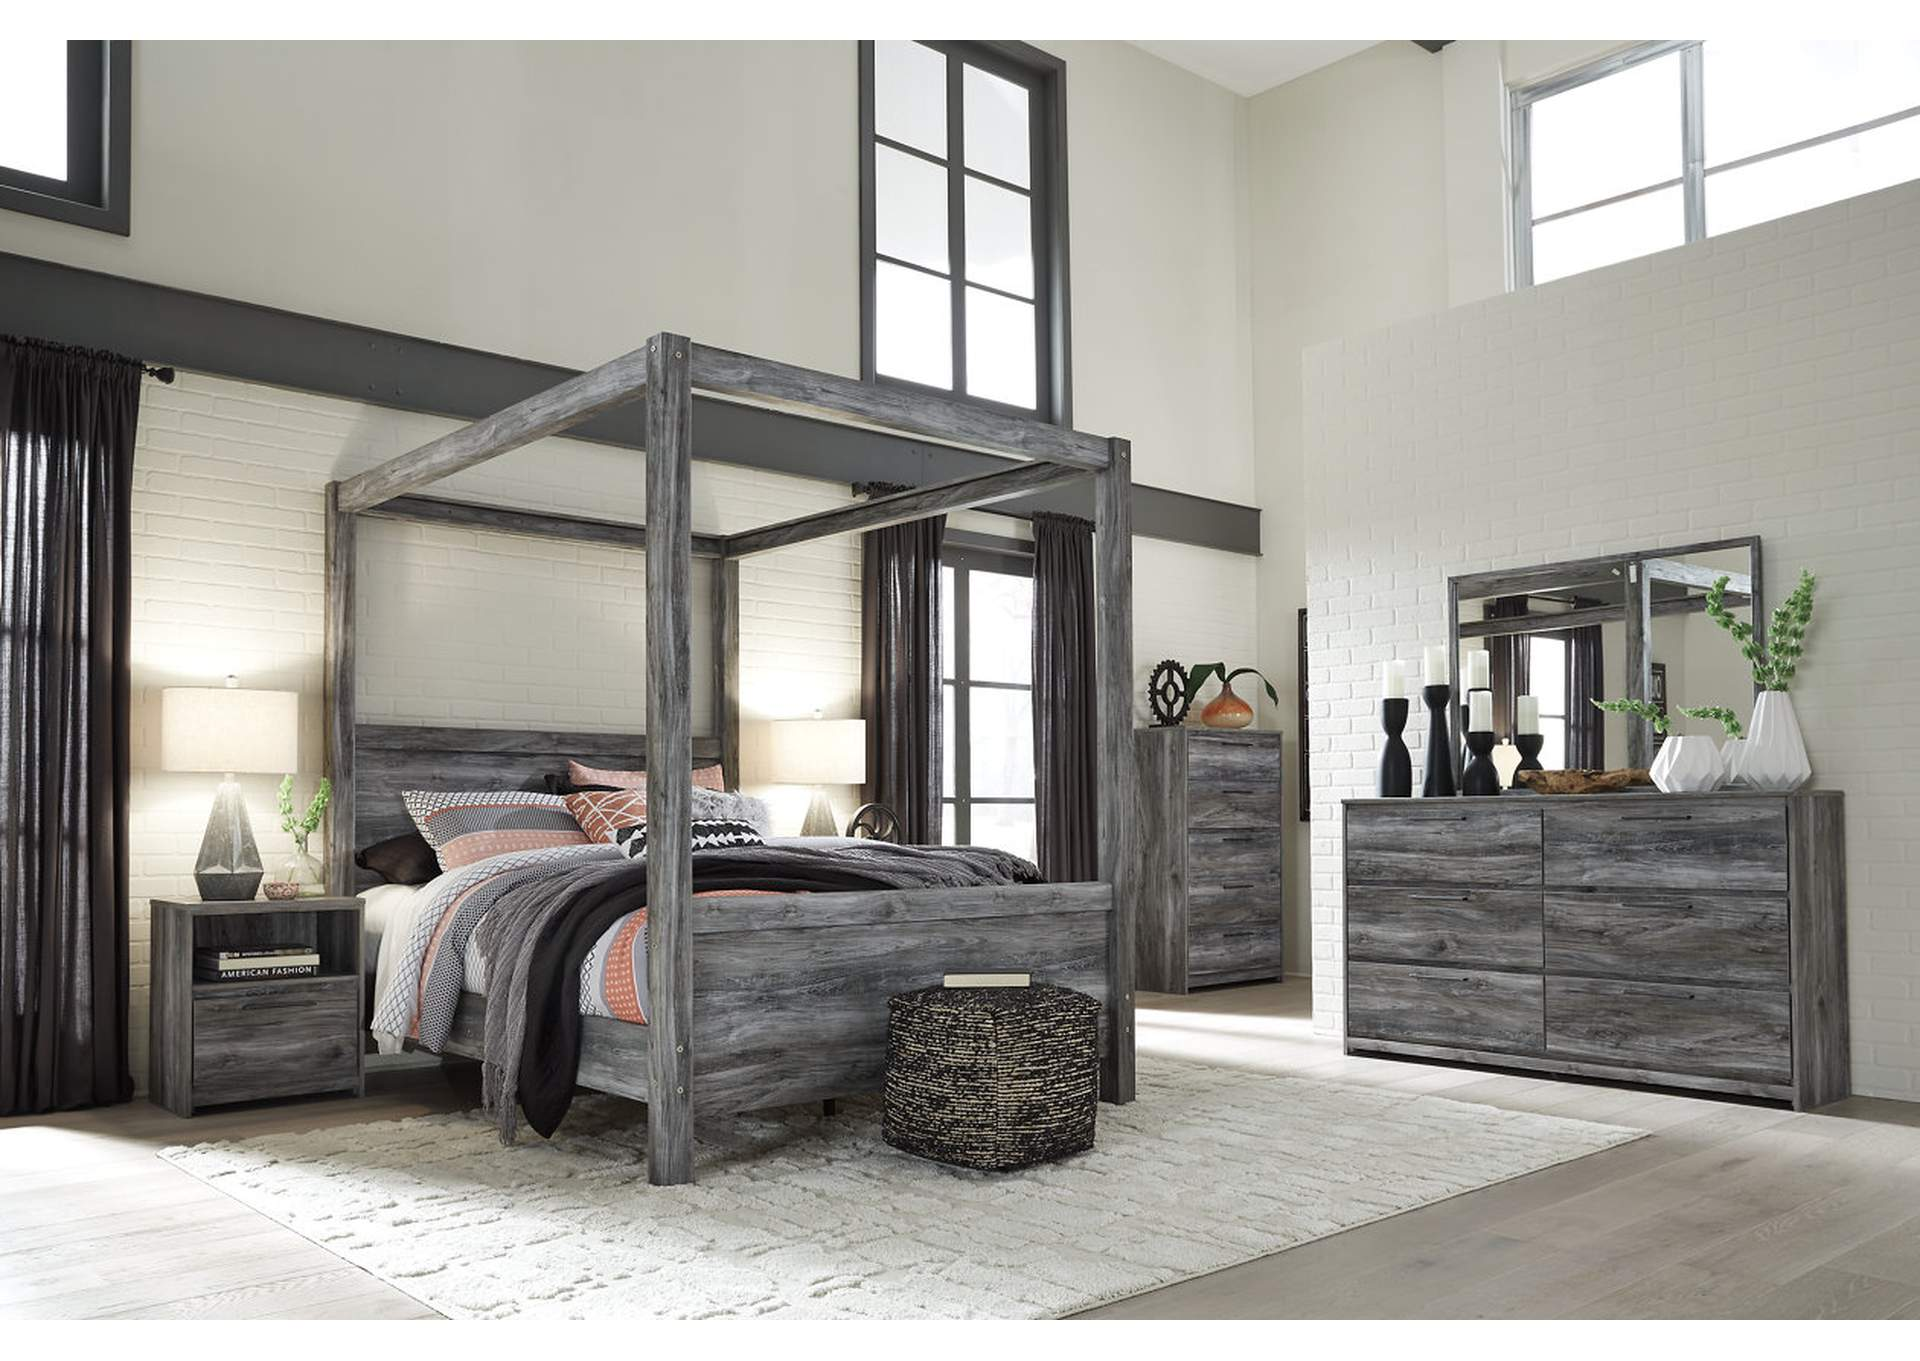 Baystorm Gray Bedroom Dresser w/Mirror,Signature Design By Ashley